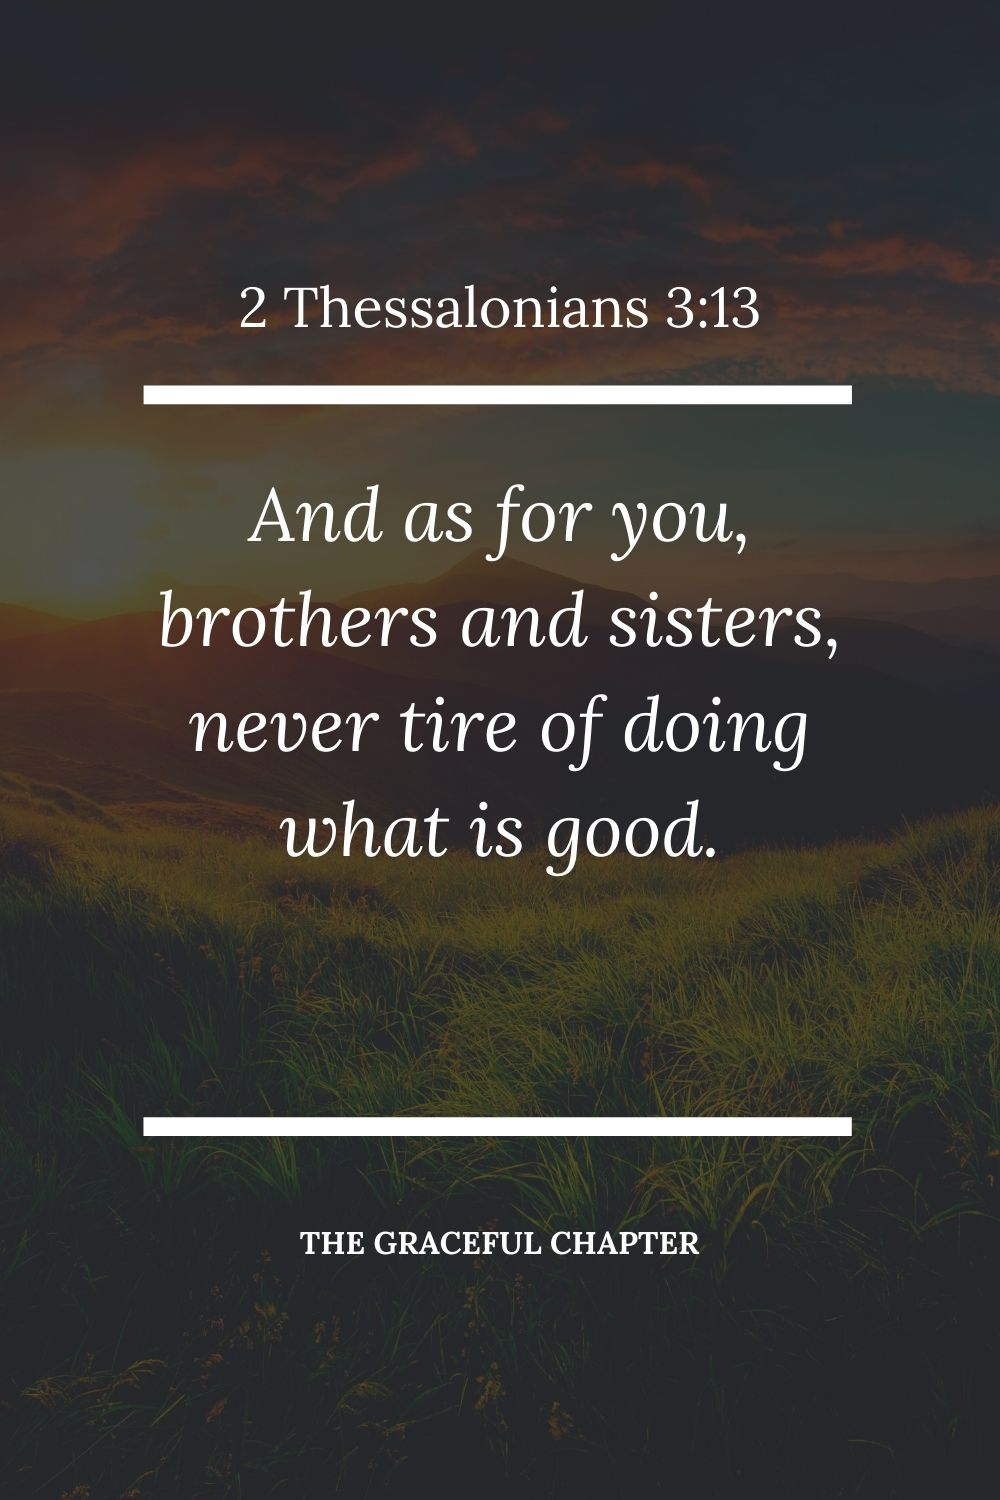 And as for you, brothers and sisters, never tire of doing what is good. 2 Thessalonians 3:13